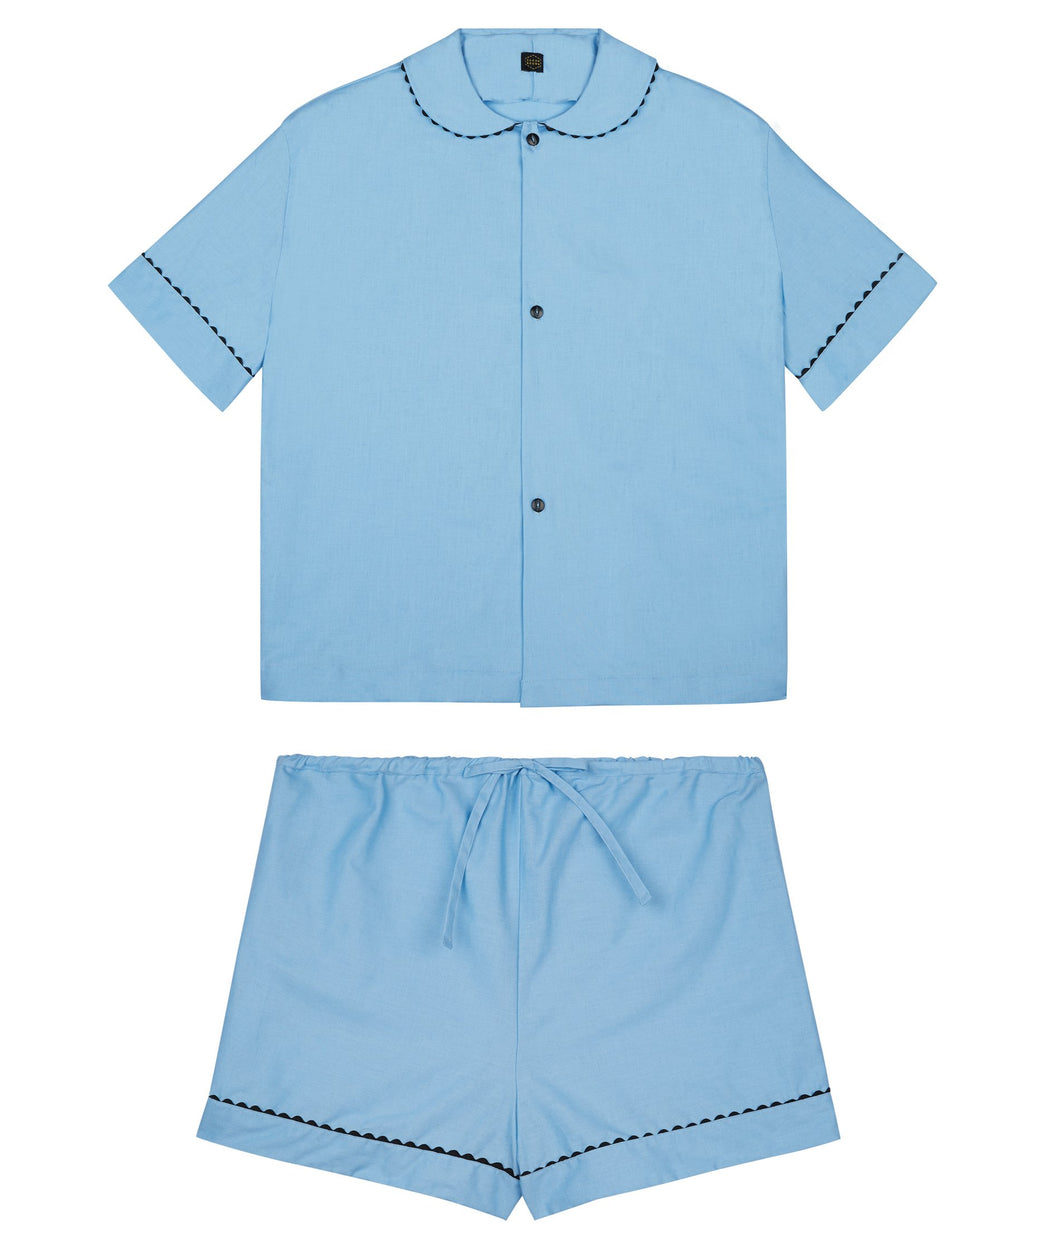 100% Cotton Poplin Pyjamas in Pastel Blue with Black Contrasting Ricrac Trim